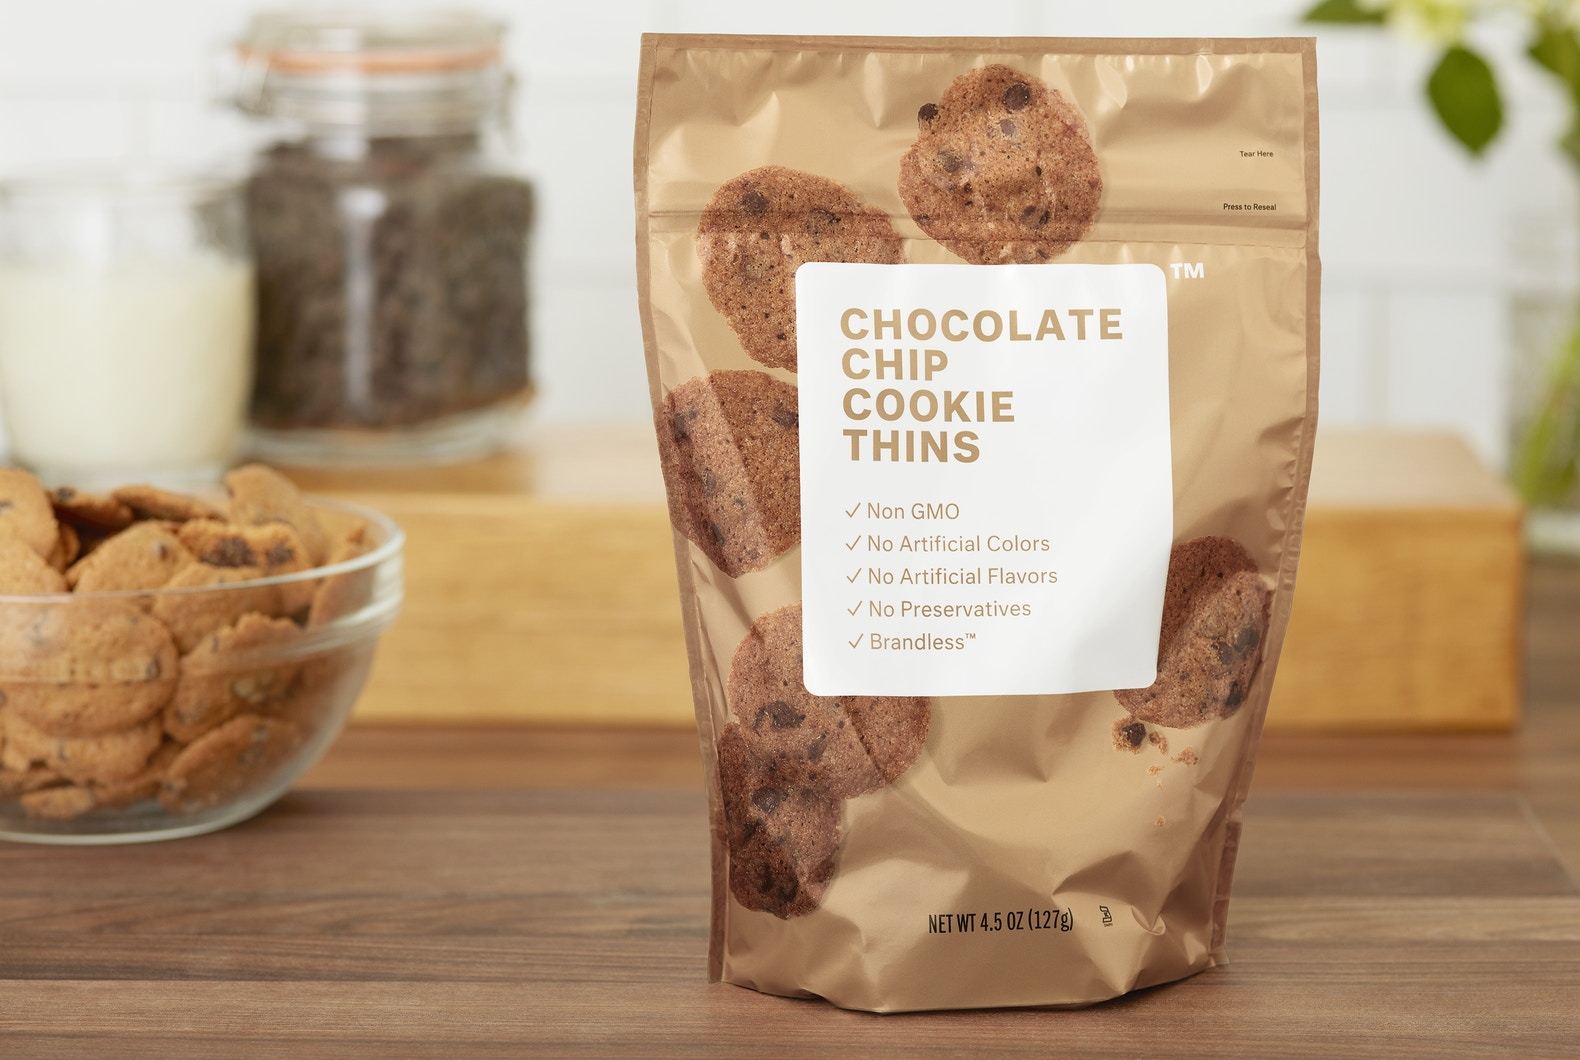 Brandless Chocolate Chip Cookies - I've made it a New Years Resolution to not leave my apartment when necessary because it's cold. Now that I can order bags of chocolate chip cookies through Brandless and munch on them while reading for my next discussion, life is 100% better. Discovering Brandless not only saves you money from buying overpriced brand-name snacks, the taste rivals the simplicity of the packaging and company's mission.